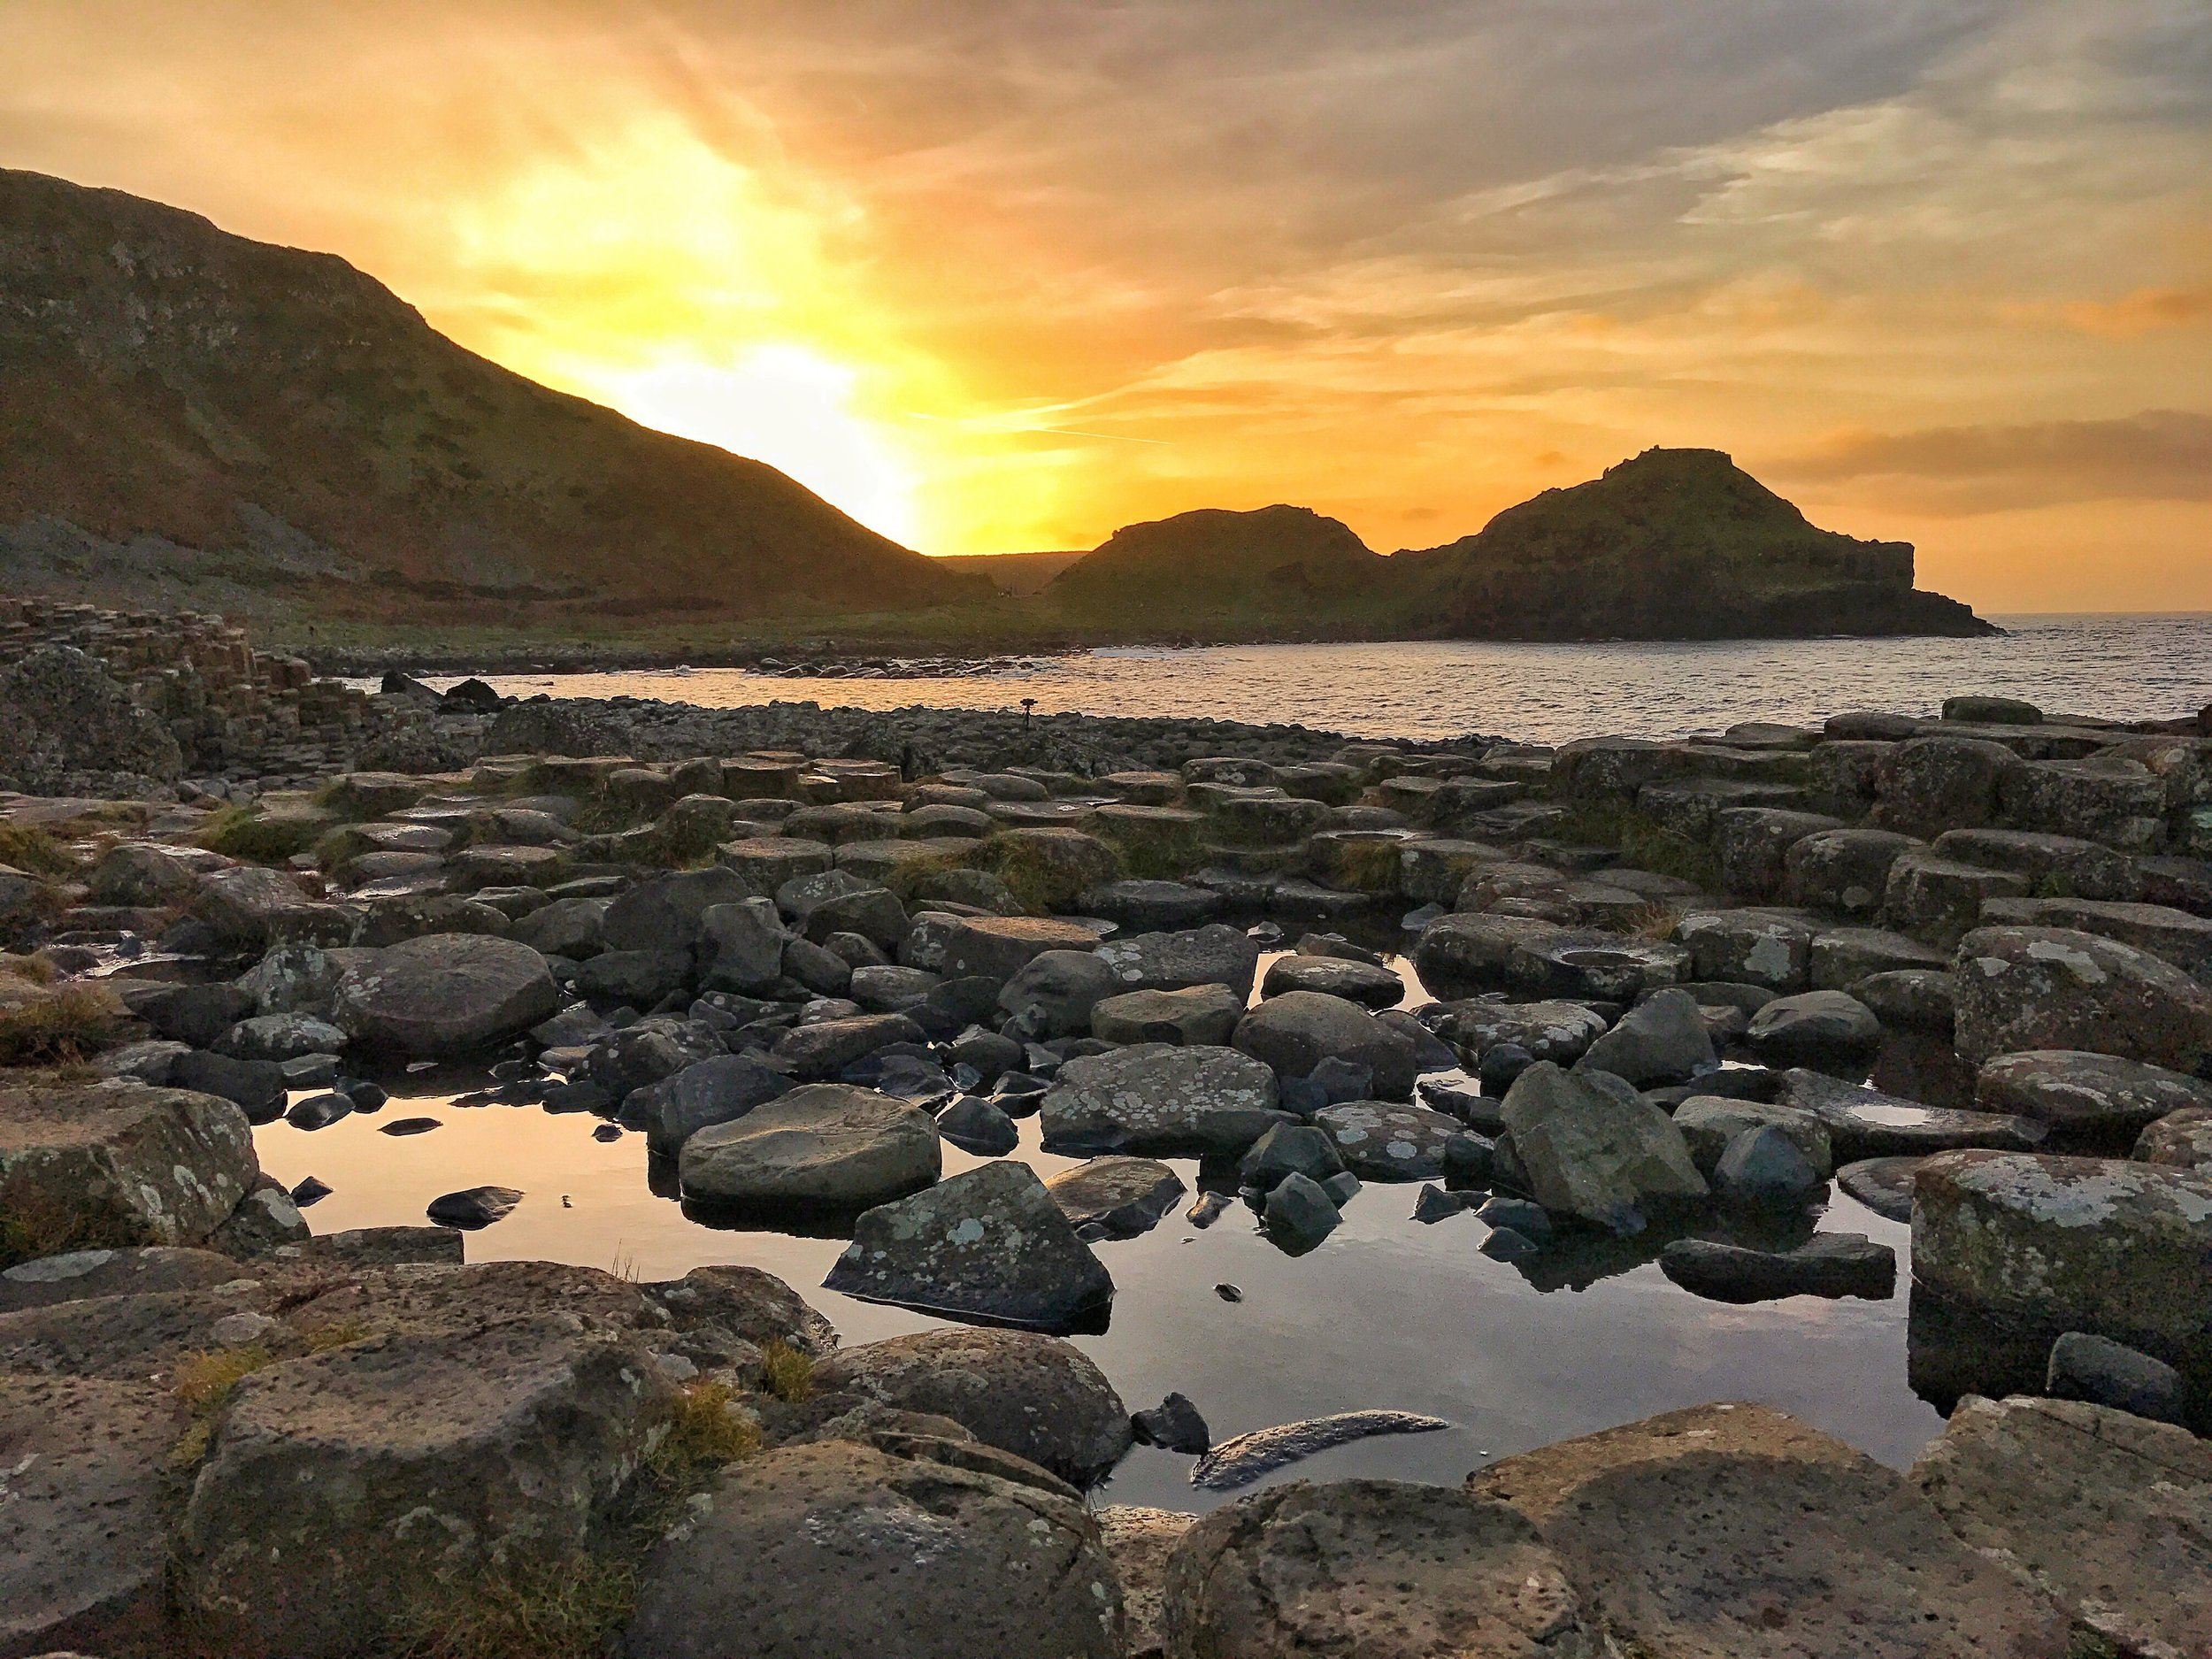 If one can manage it, sunset is an excellent time to visit the Giant's Causeway.